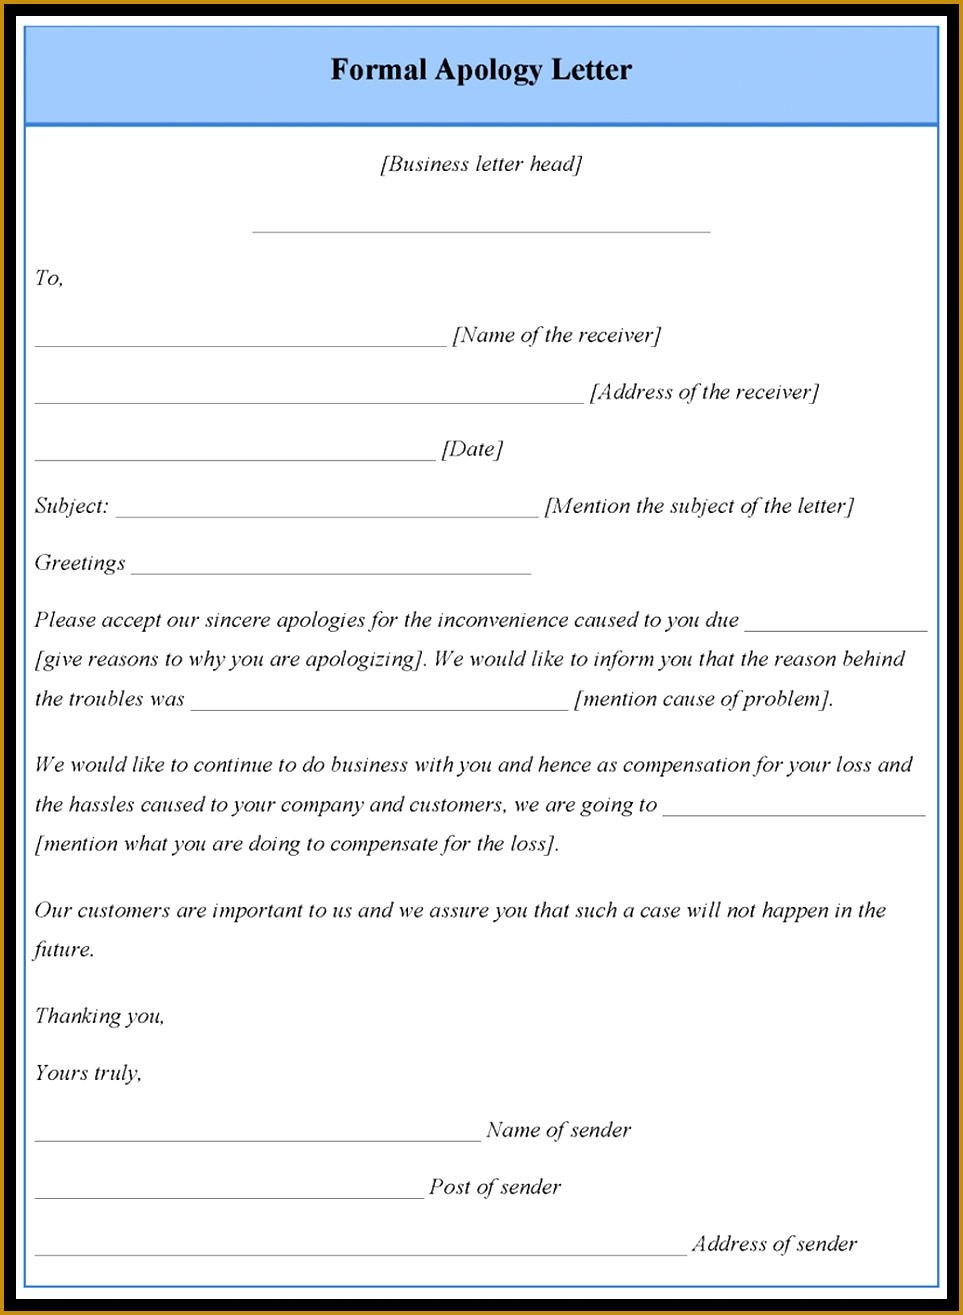 Apology Letter Example Formal Letter Template Apology Sample Service Resume Layout For 1315963